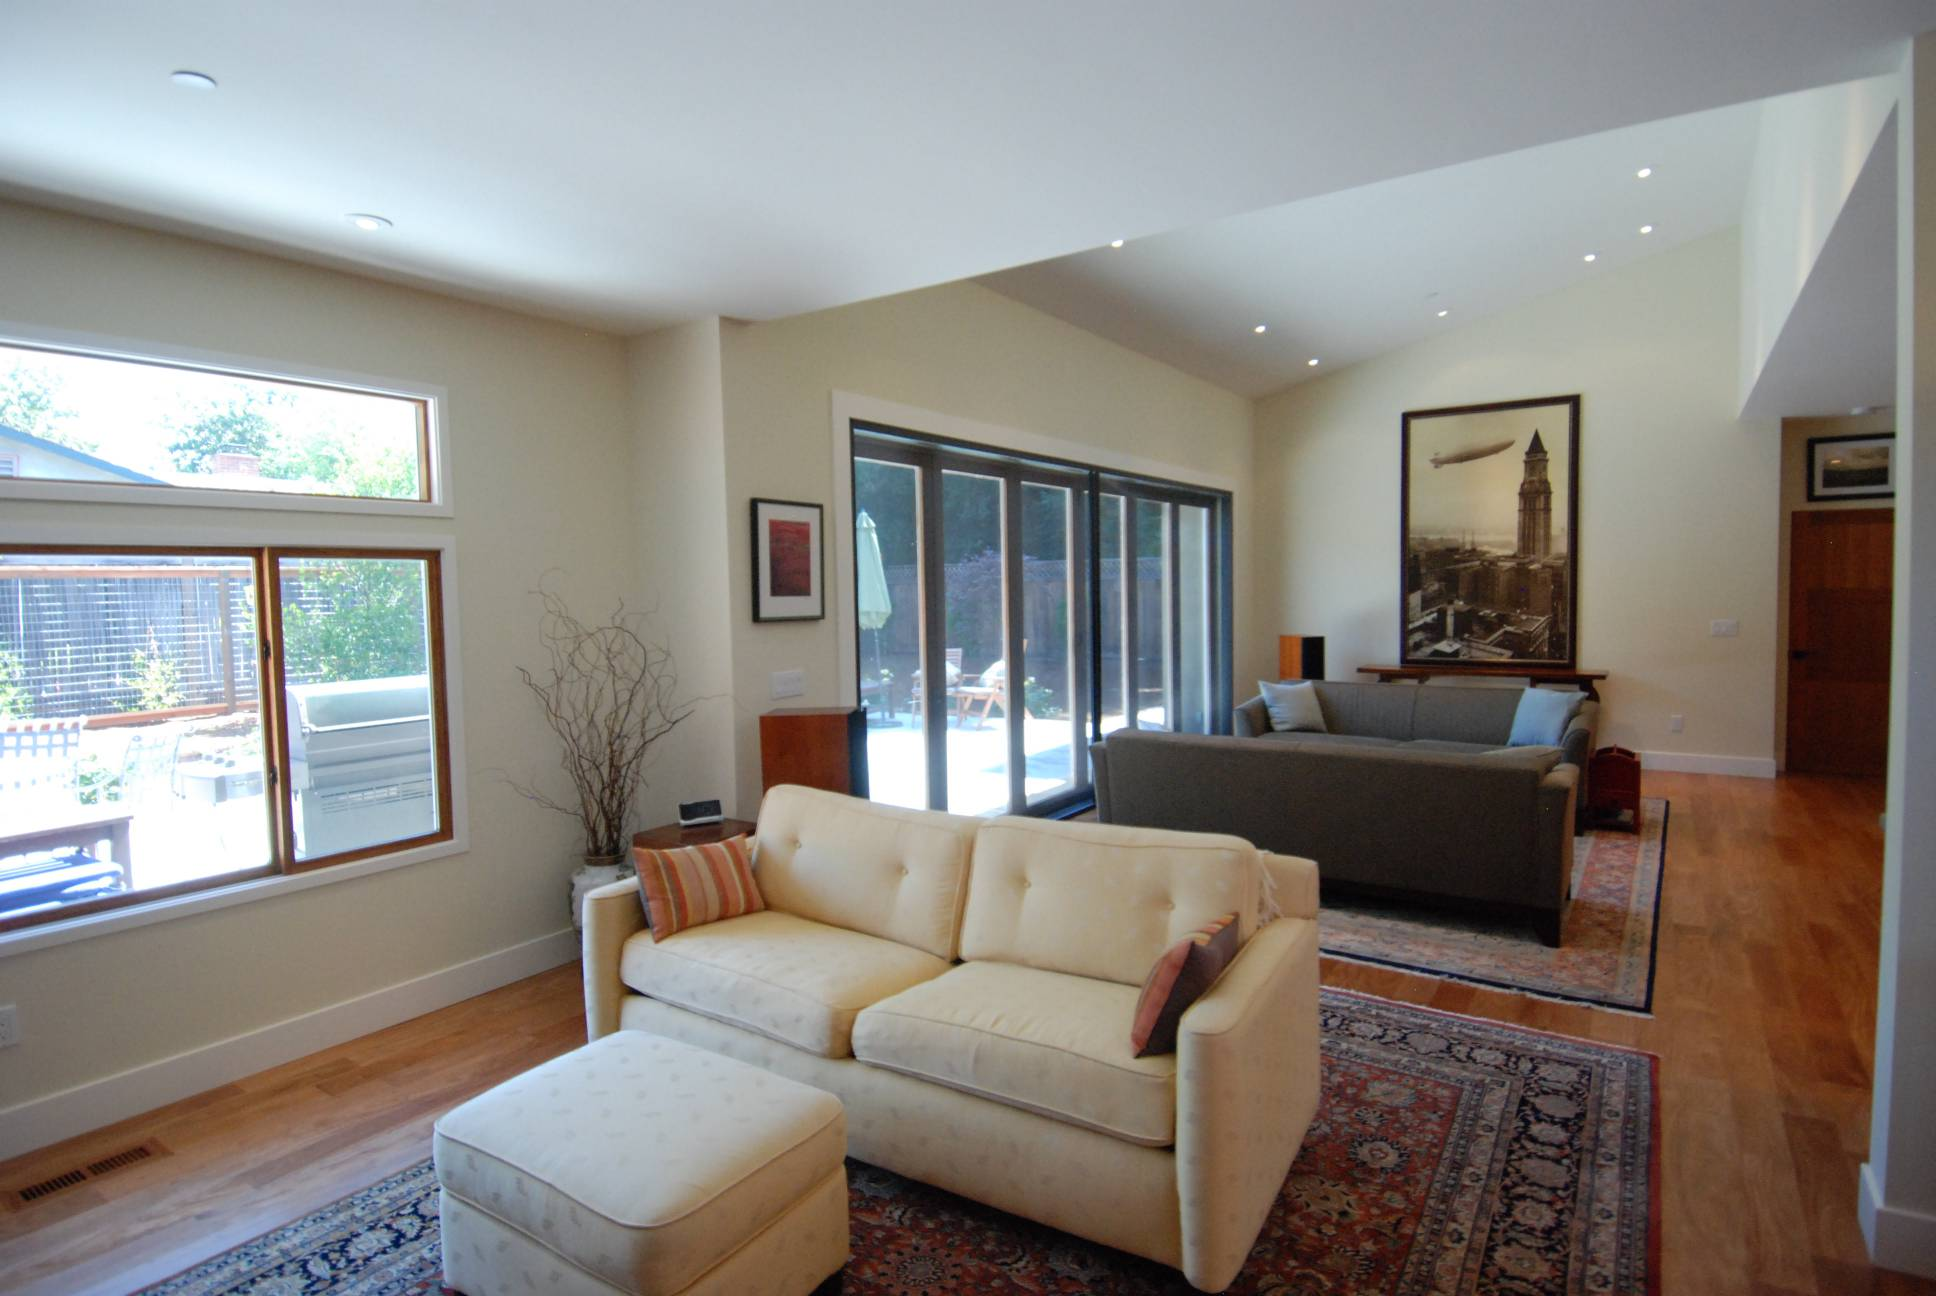 Great room, interior work, best architect design, Palo Alto